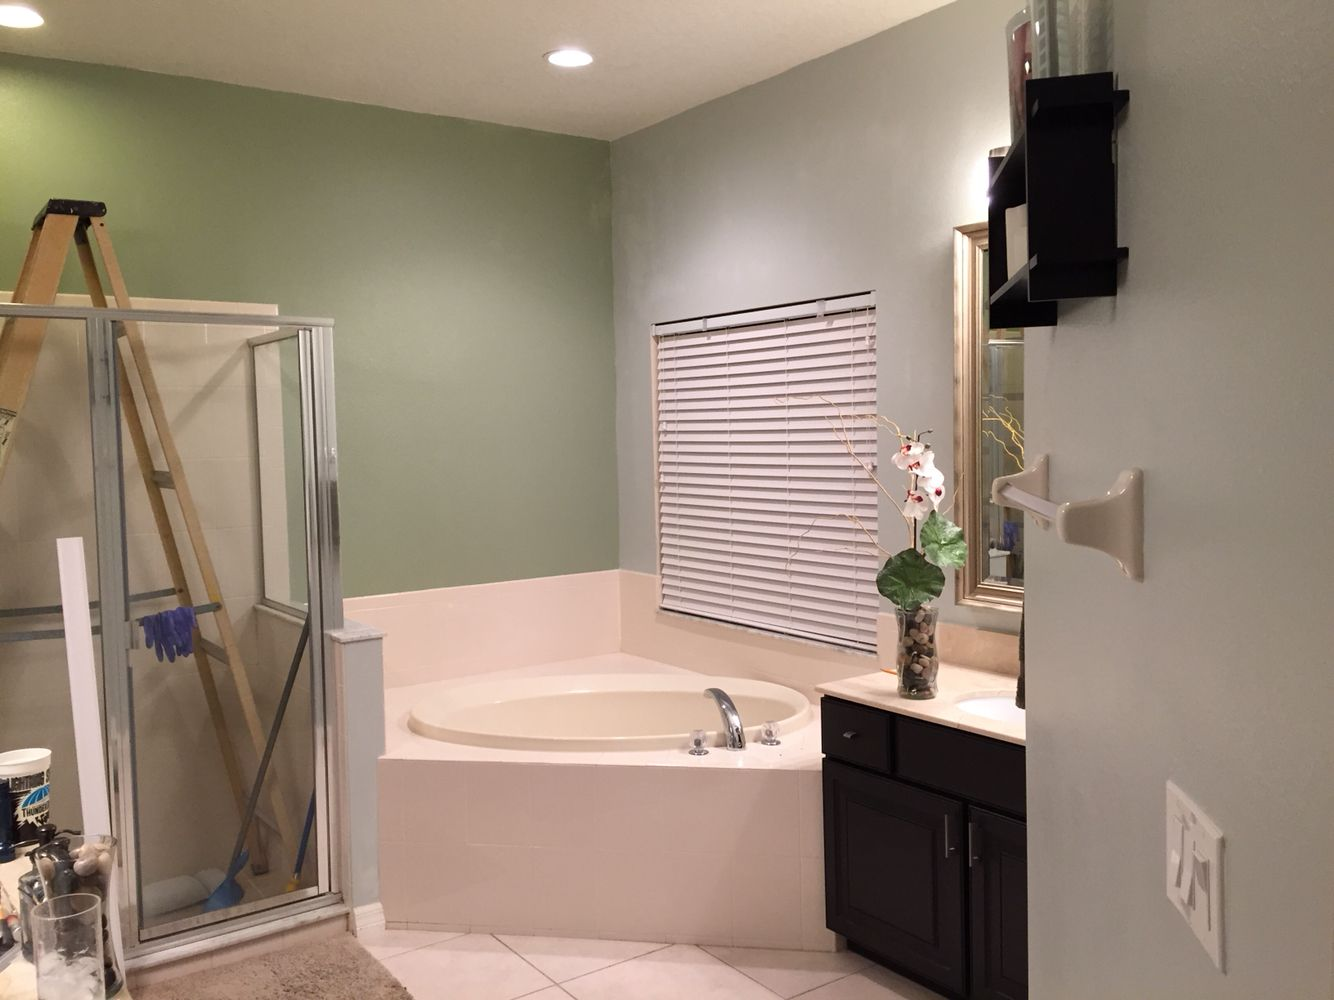 Accent Wall And Base Wall The Green Is Sherwin Williams Clary Sage Sw6178 Interior Satin And The Blues Silver Color Interior Bathroom Makeover Accent Wall